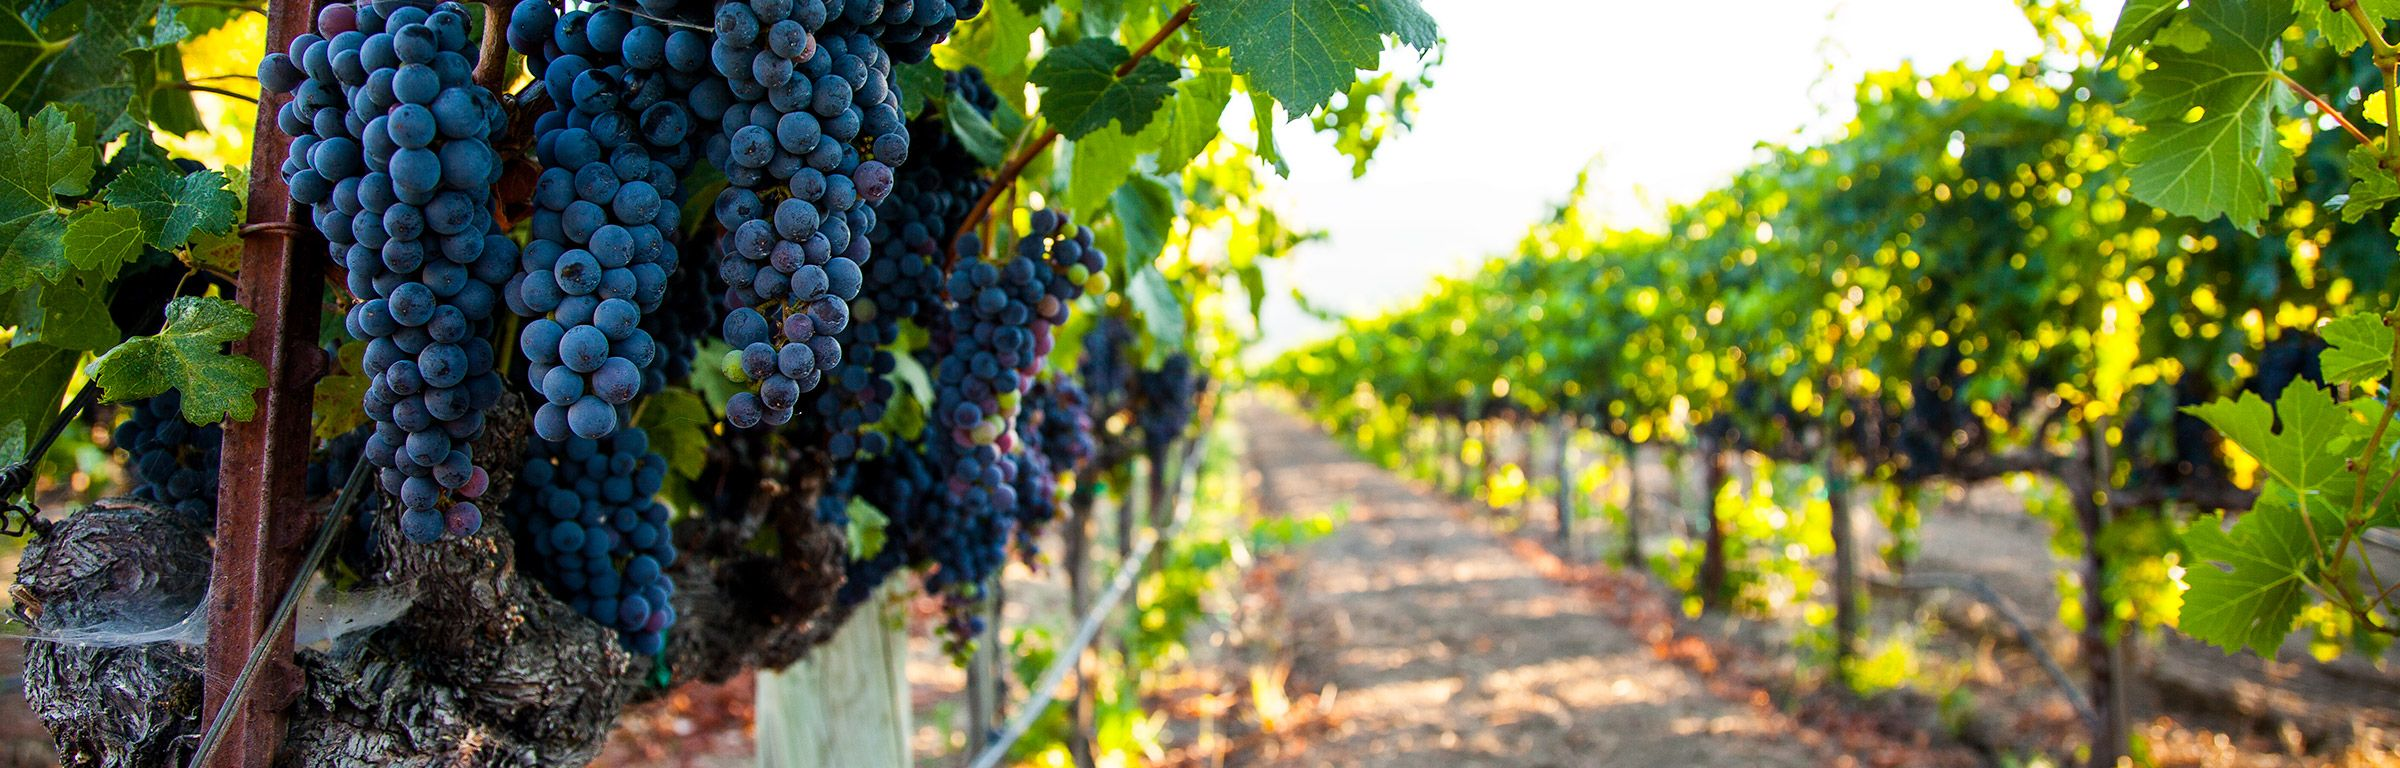 SPCC Plan & Stormwater Pollution Prevention Plan – California Winery & Vineyards